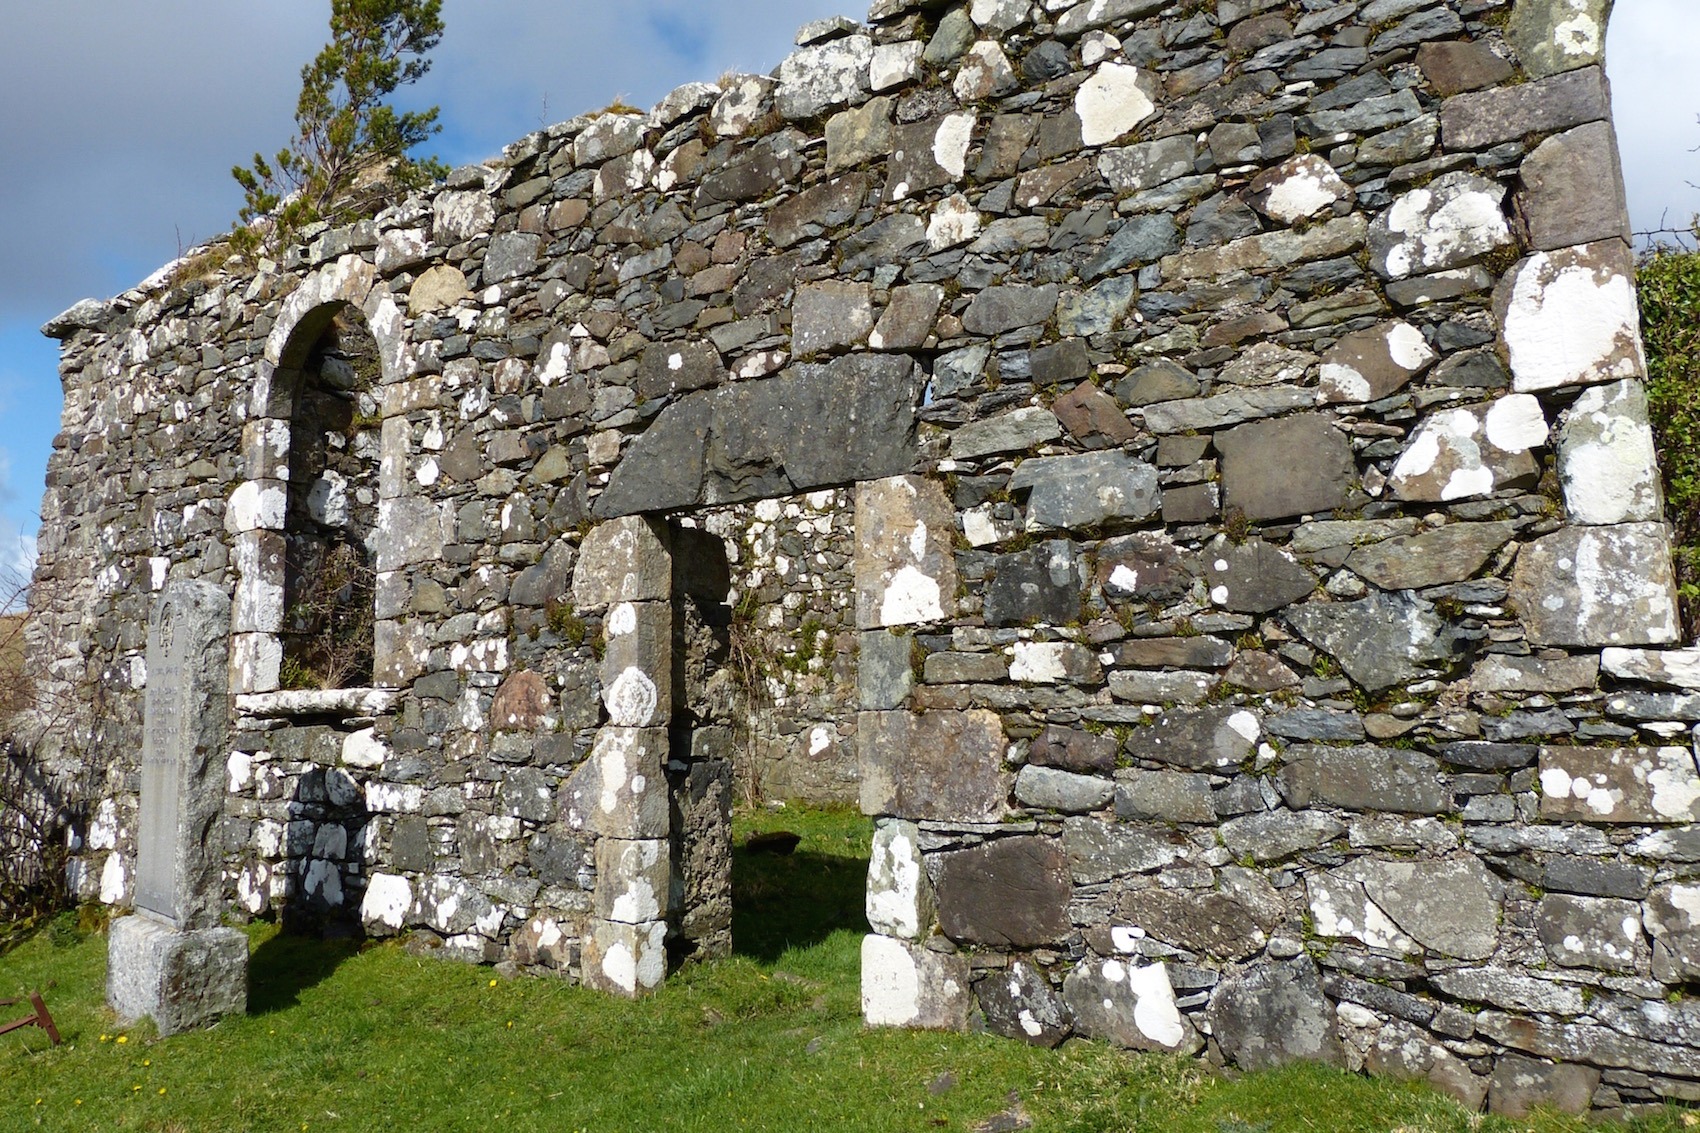 The entrance to the church, with the lintel stone